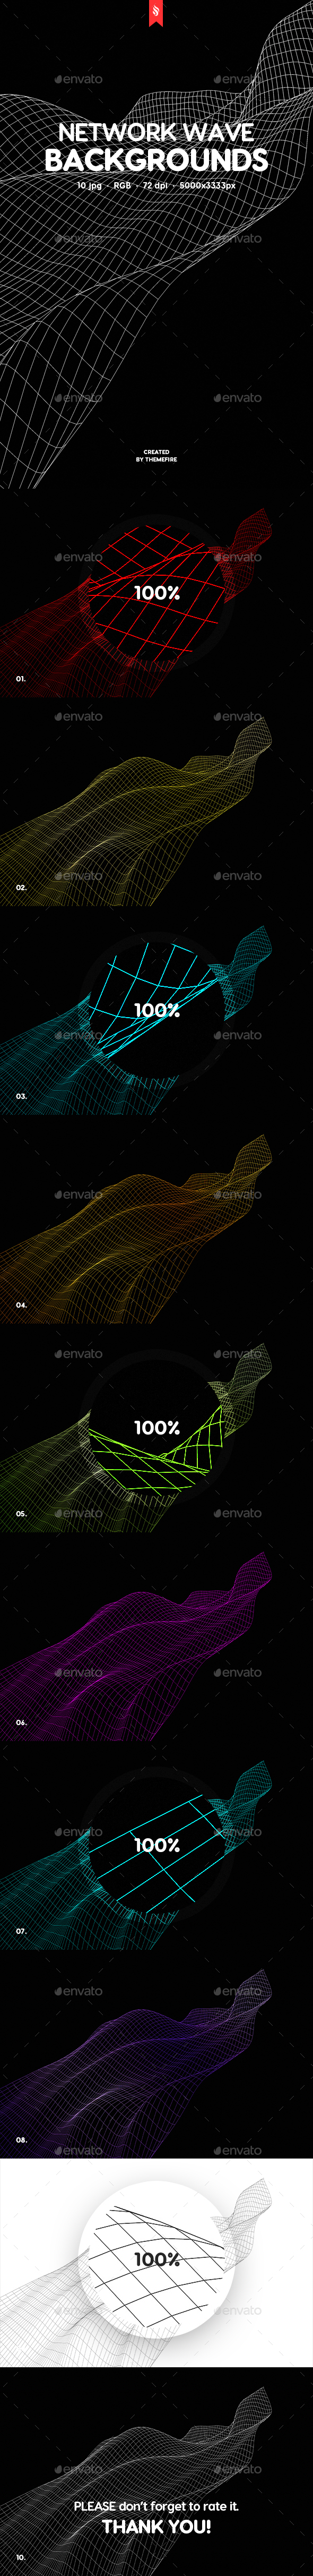 Smooth Network Wave Backgrounds - 3D Backgrounds